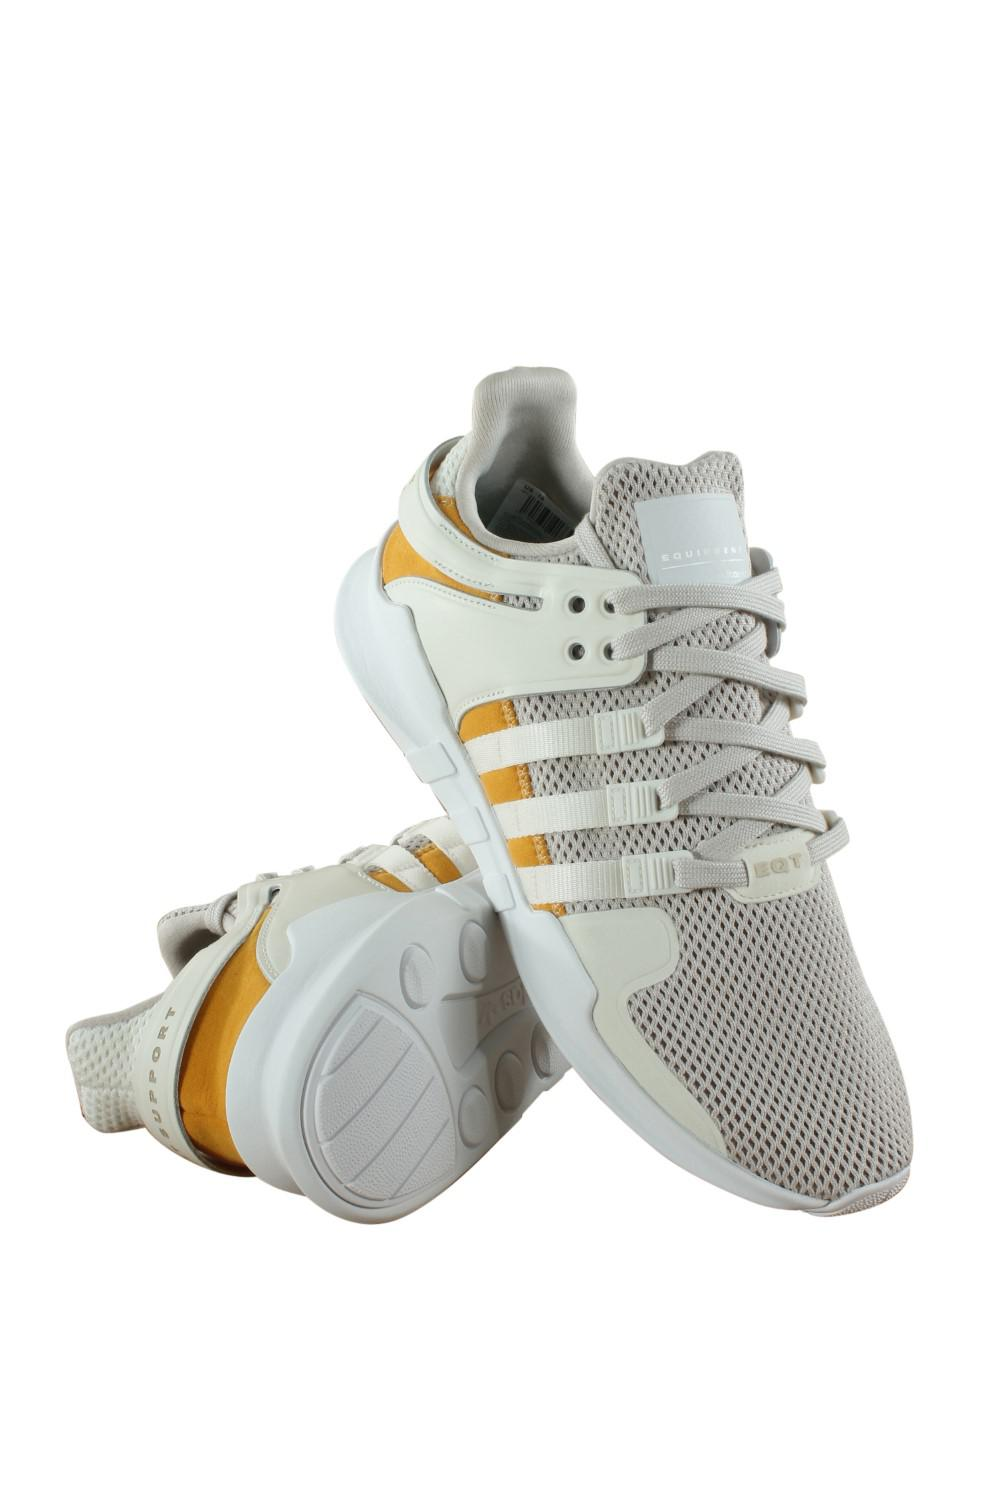 new products f12b9 bca31 ... Adidas originals Ac7141 Men Equipment Suppport Adv Owhitecbr ADIDAS  ORIGINALS EQT SUPPORT ADV ScarletOff White ...